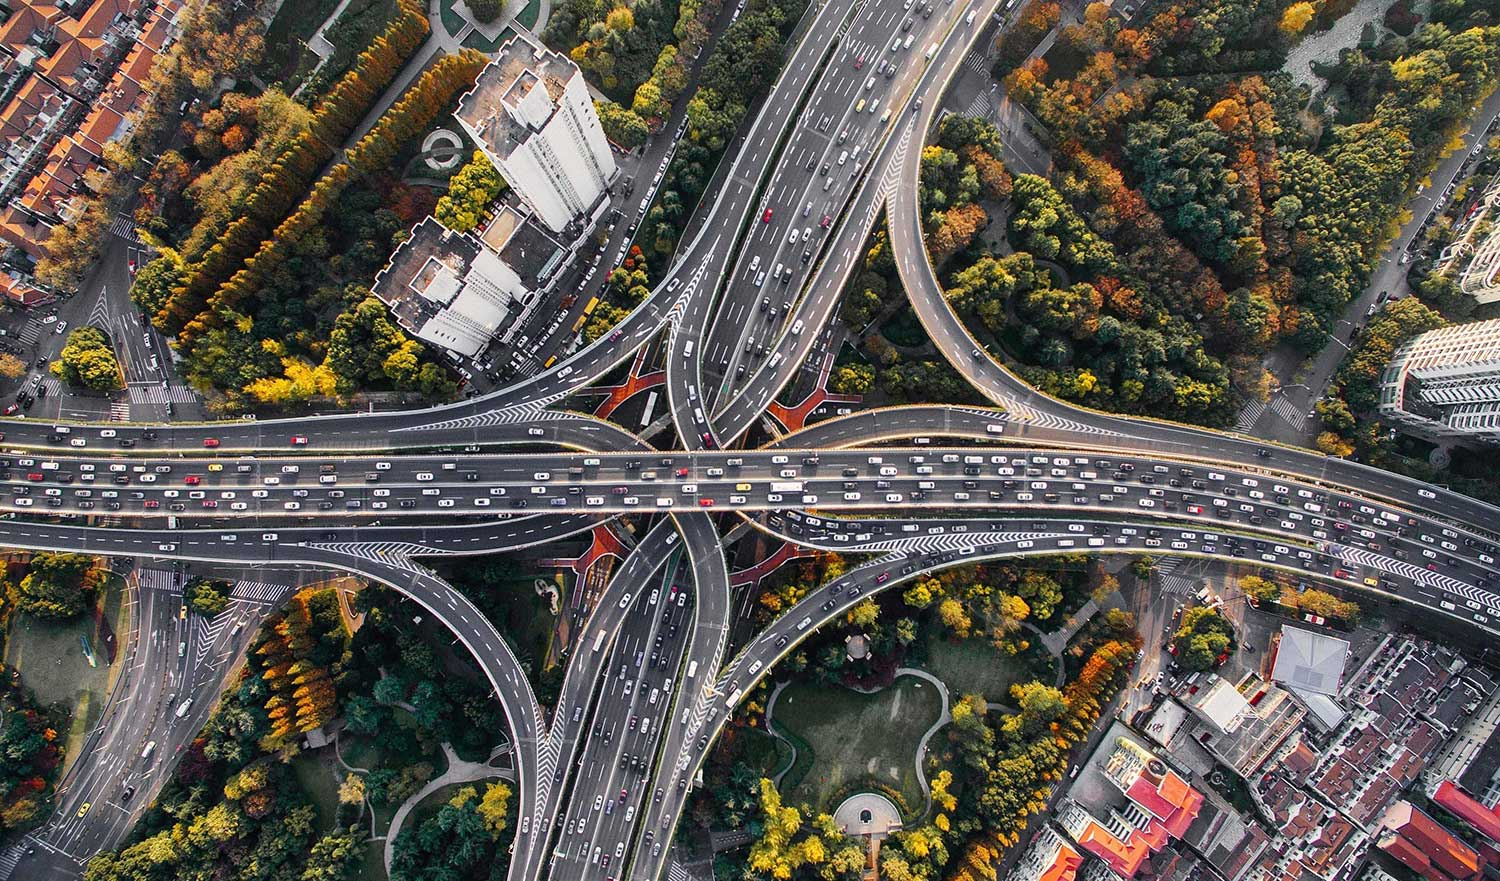 Highway interchanges signifying systems integrations